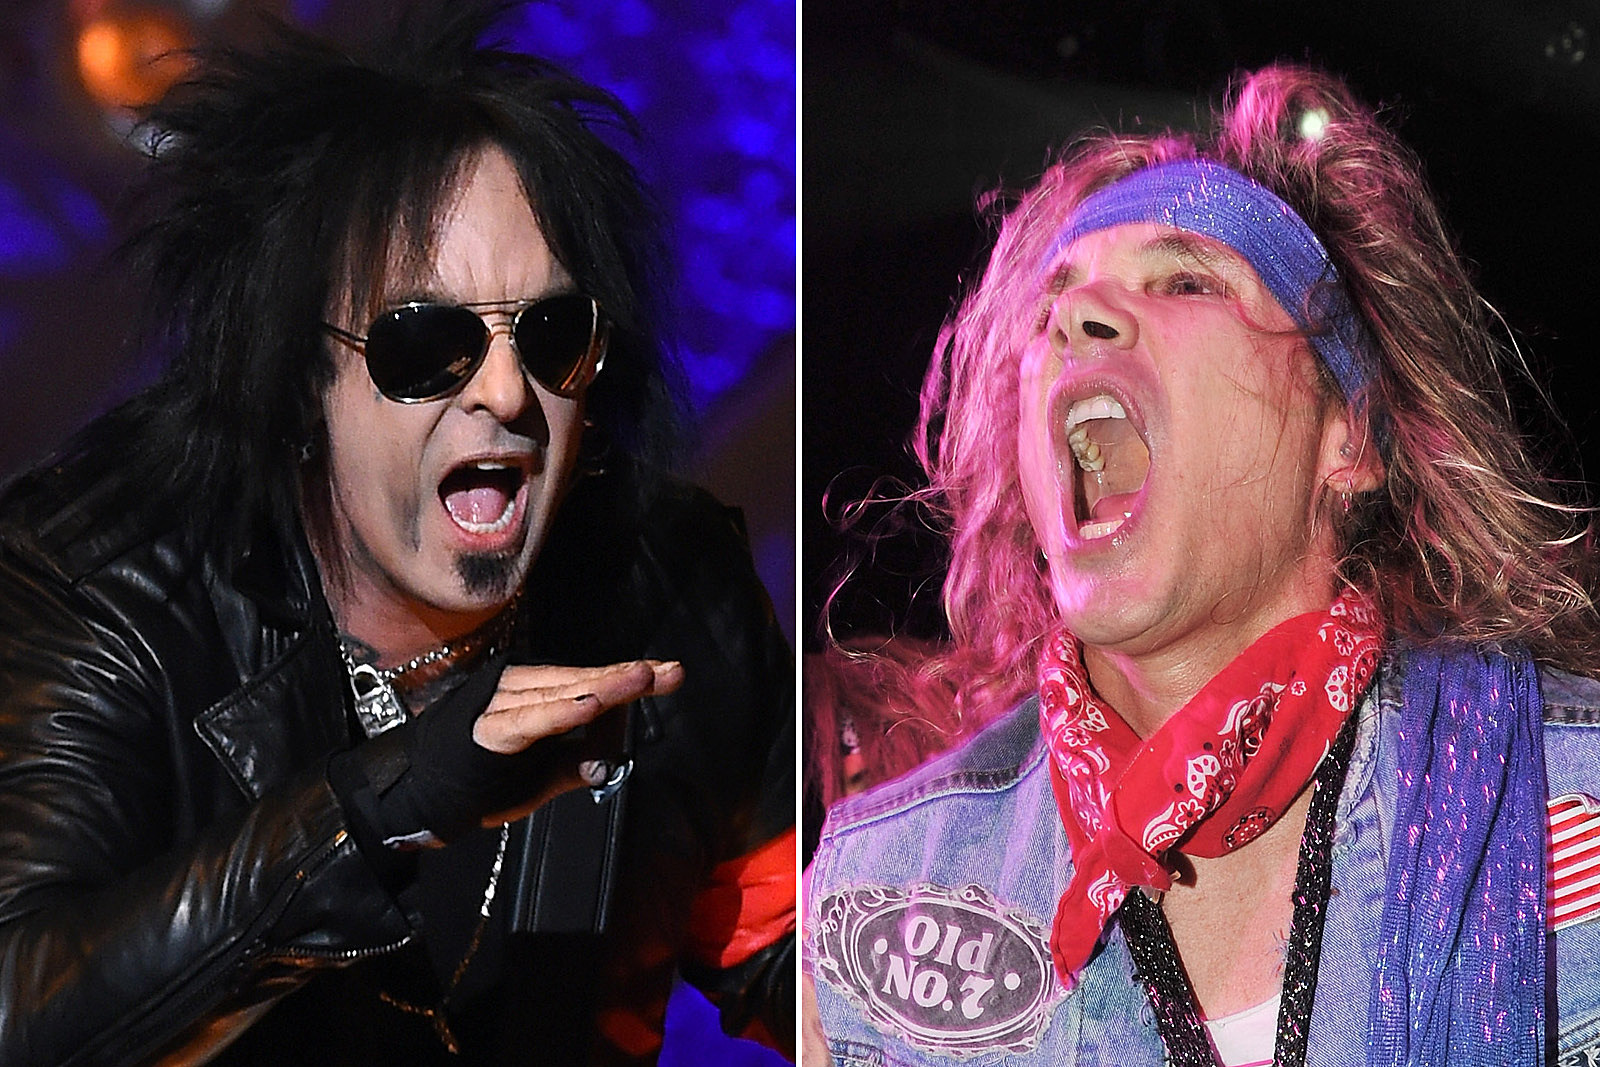 Steel Panther Suggest Nikki Sixx is a Hypocrite